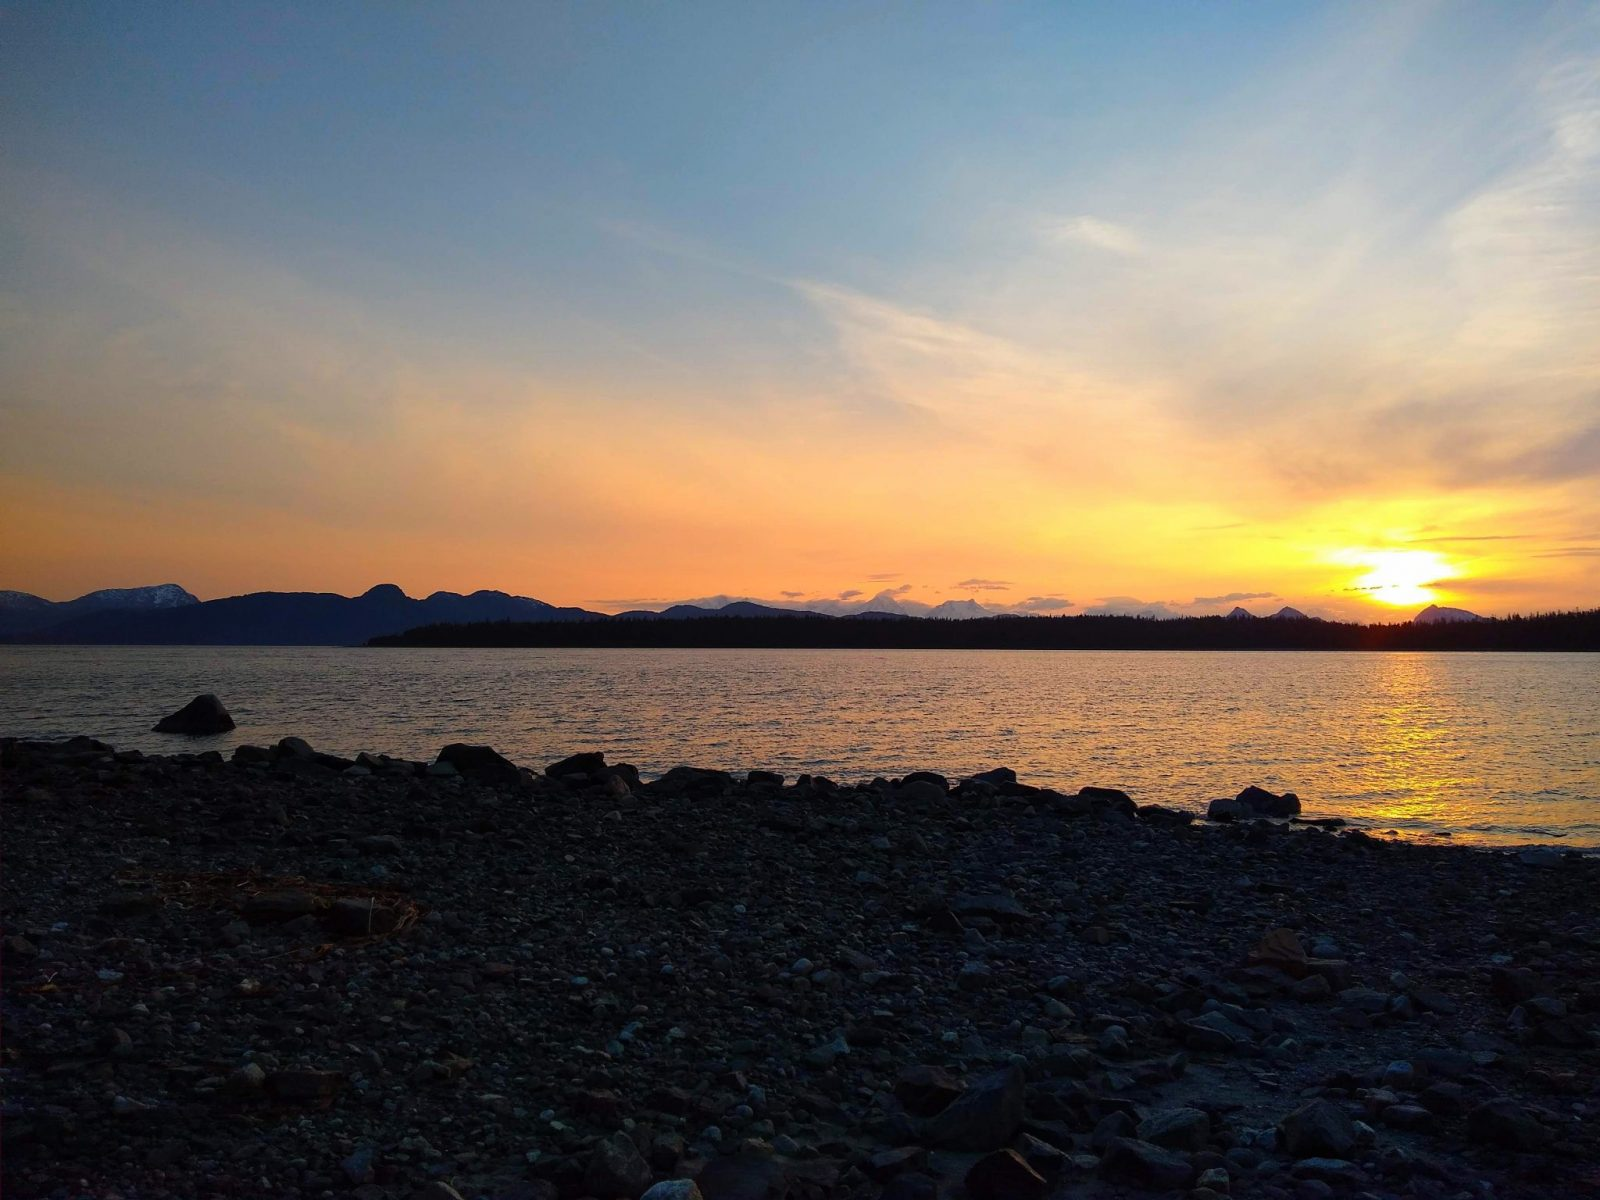 Sunset behind distant mountains across the bay from a rocky beach in the Bartlett Cove Campground in Glacier Bay National Park